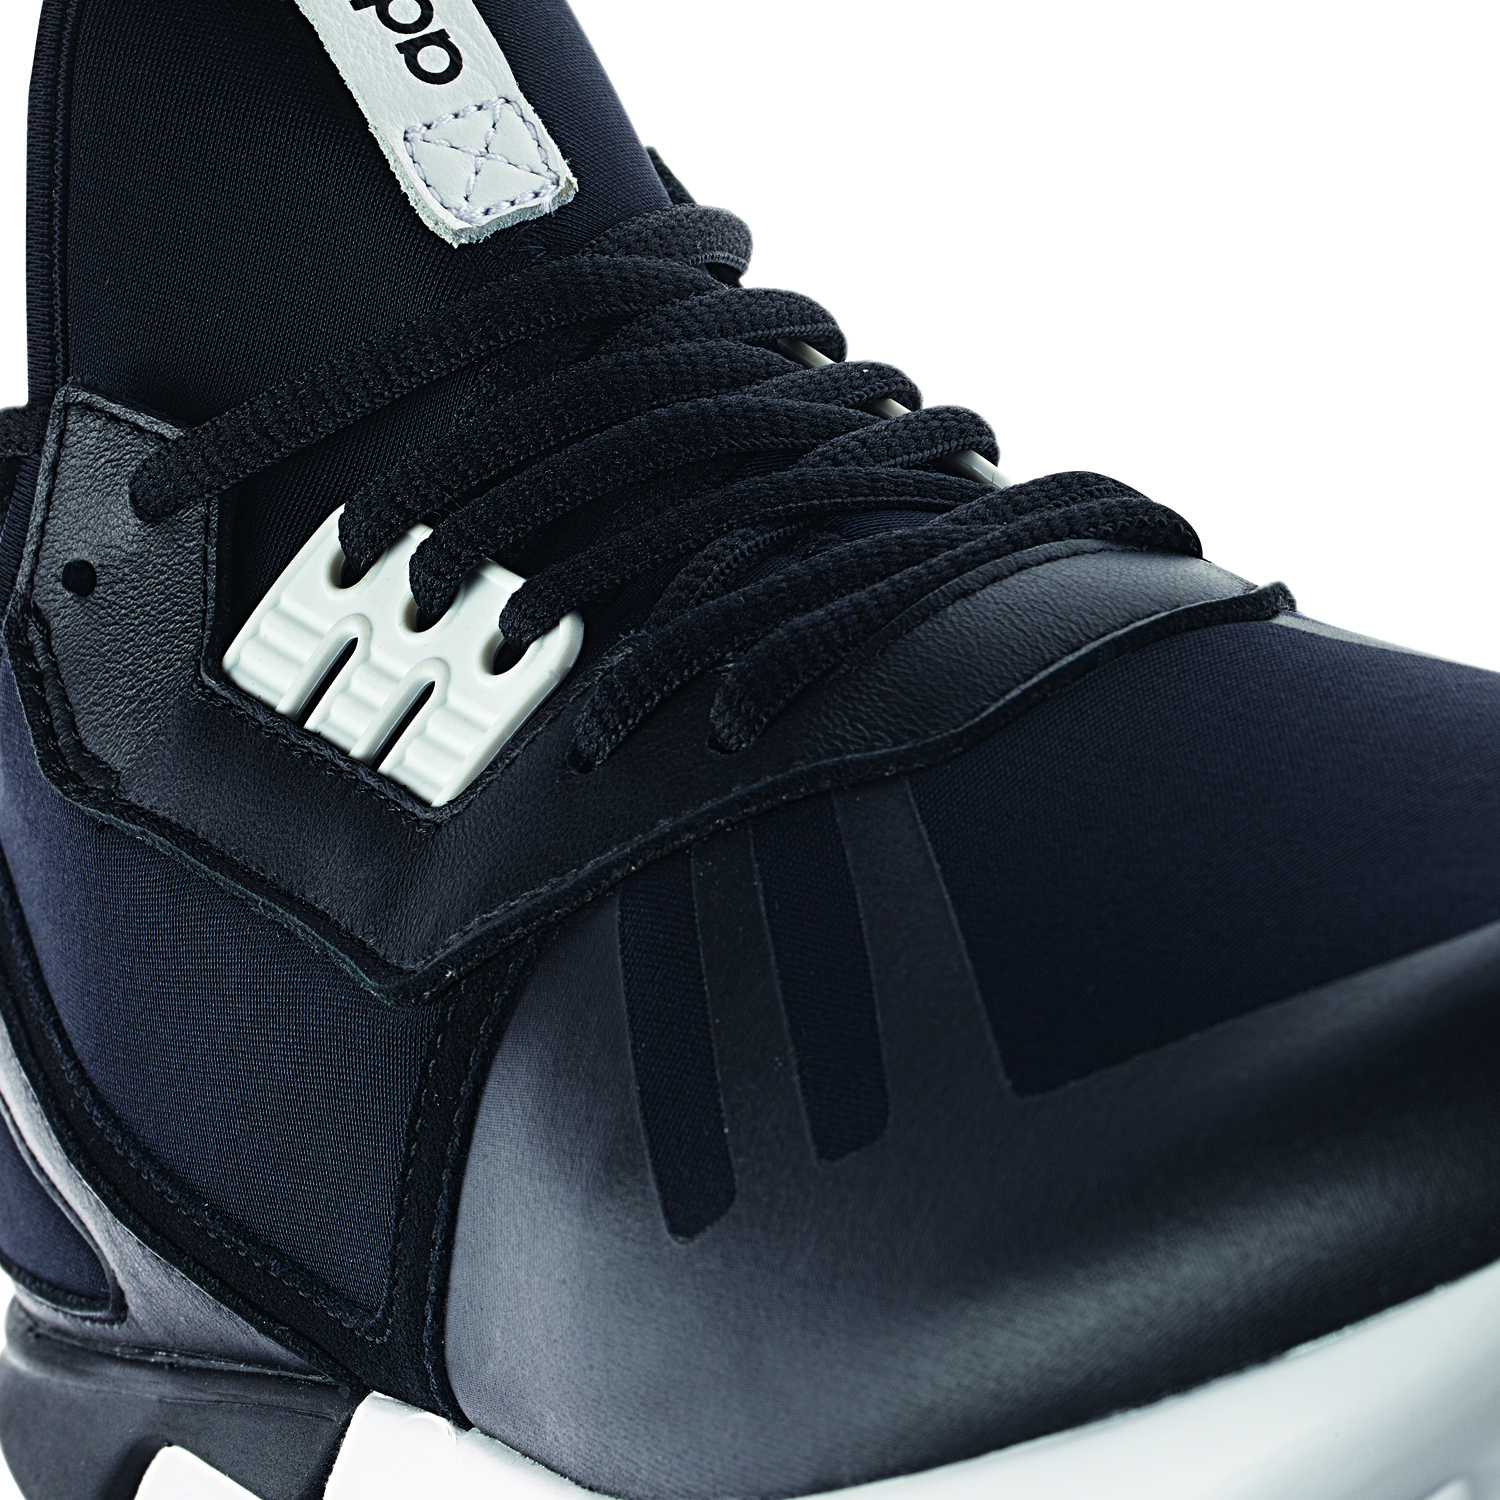 Details Adidas Originals Tubular